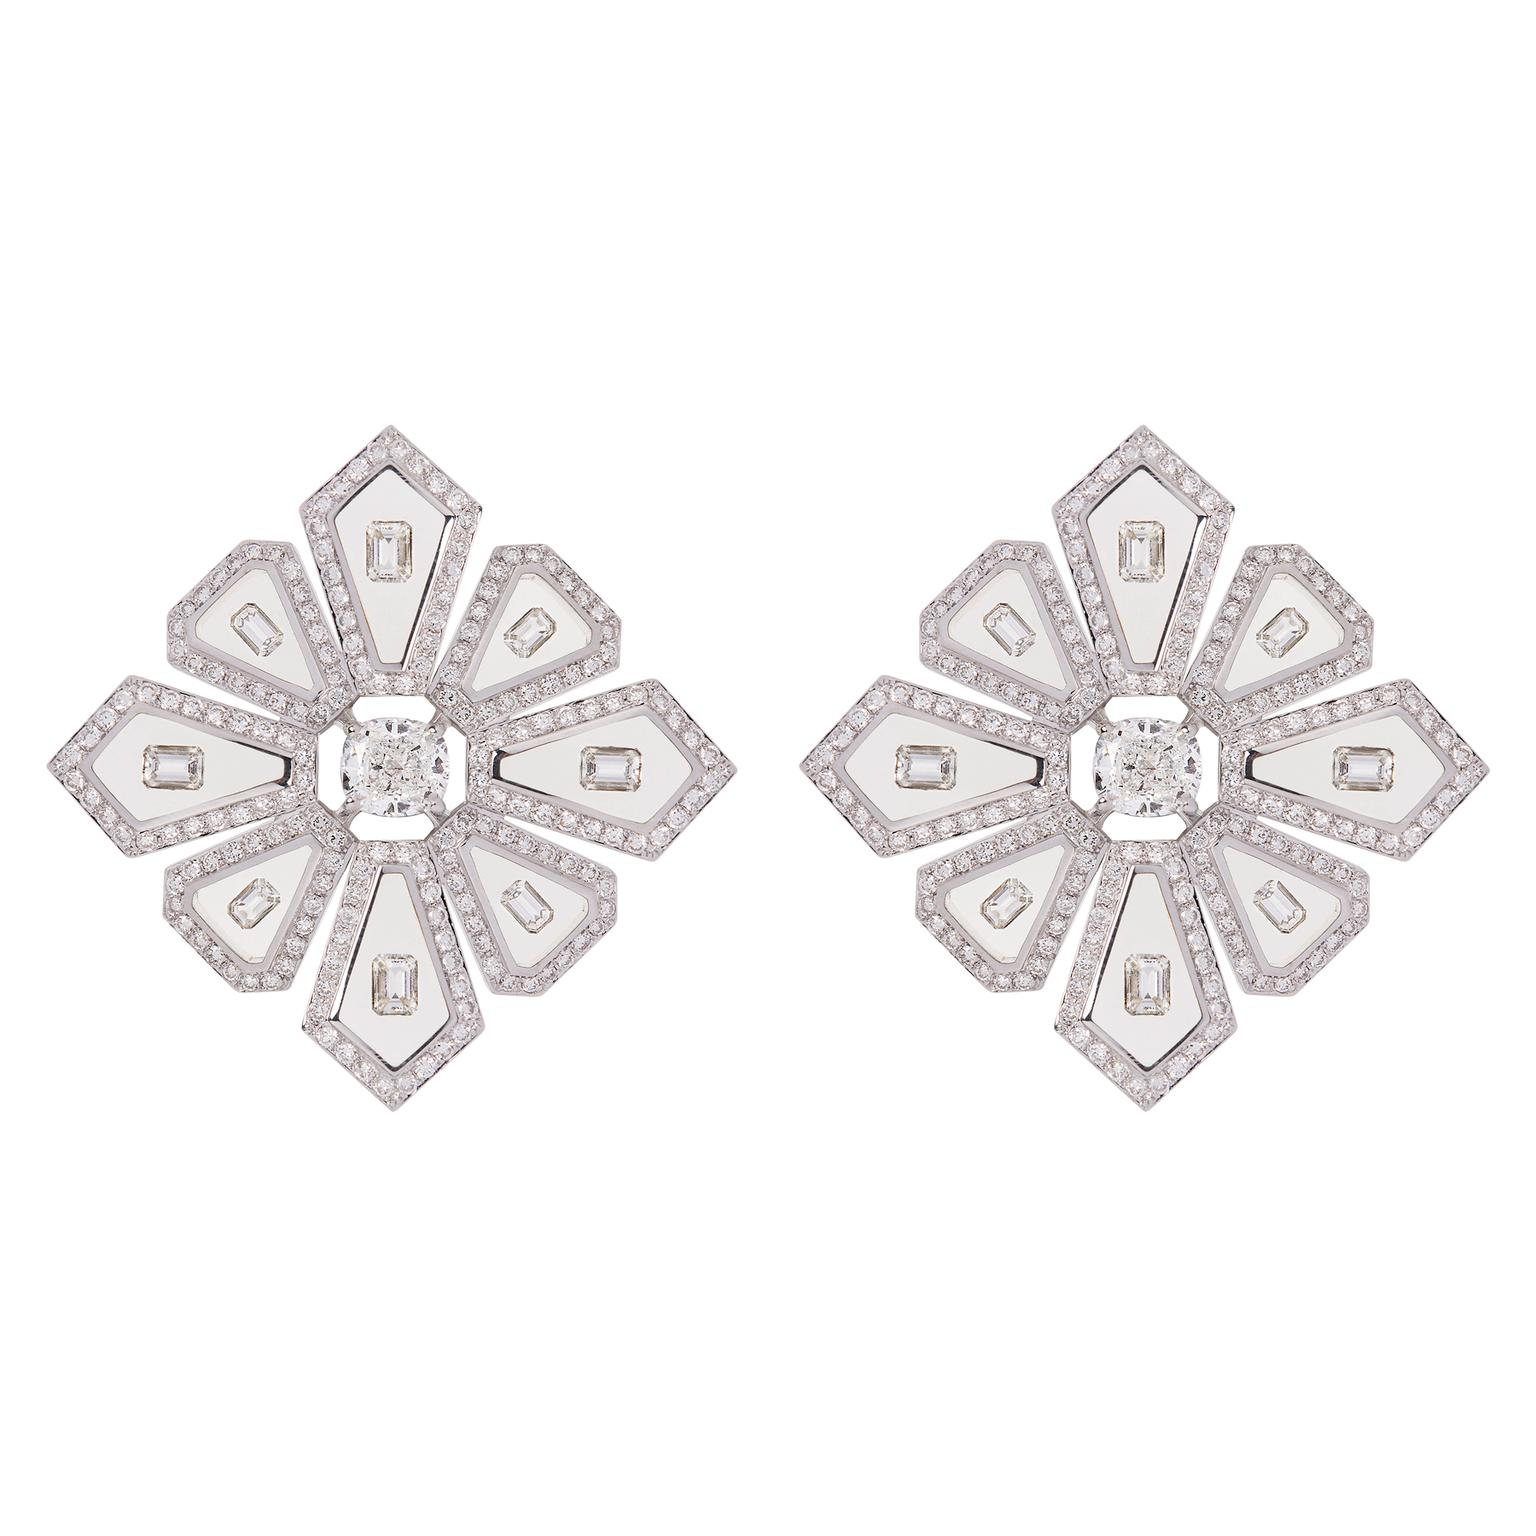 Nikos Koulis Universe collection diamond daisy earrings